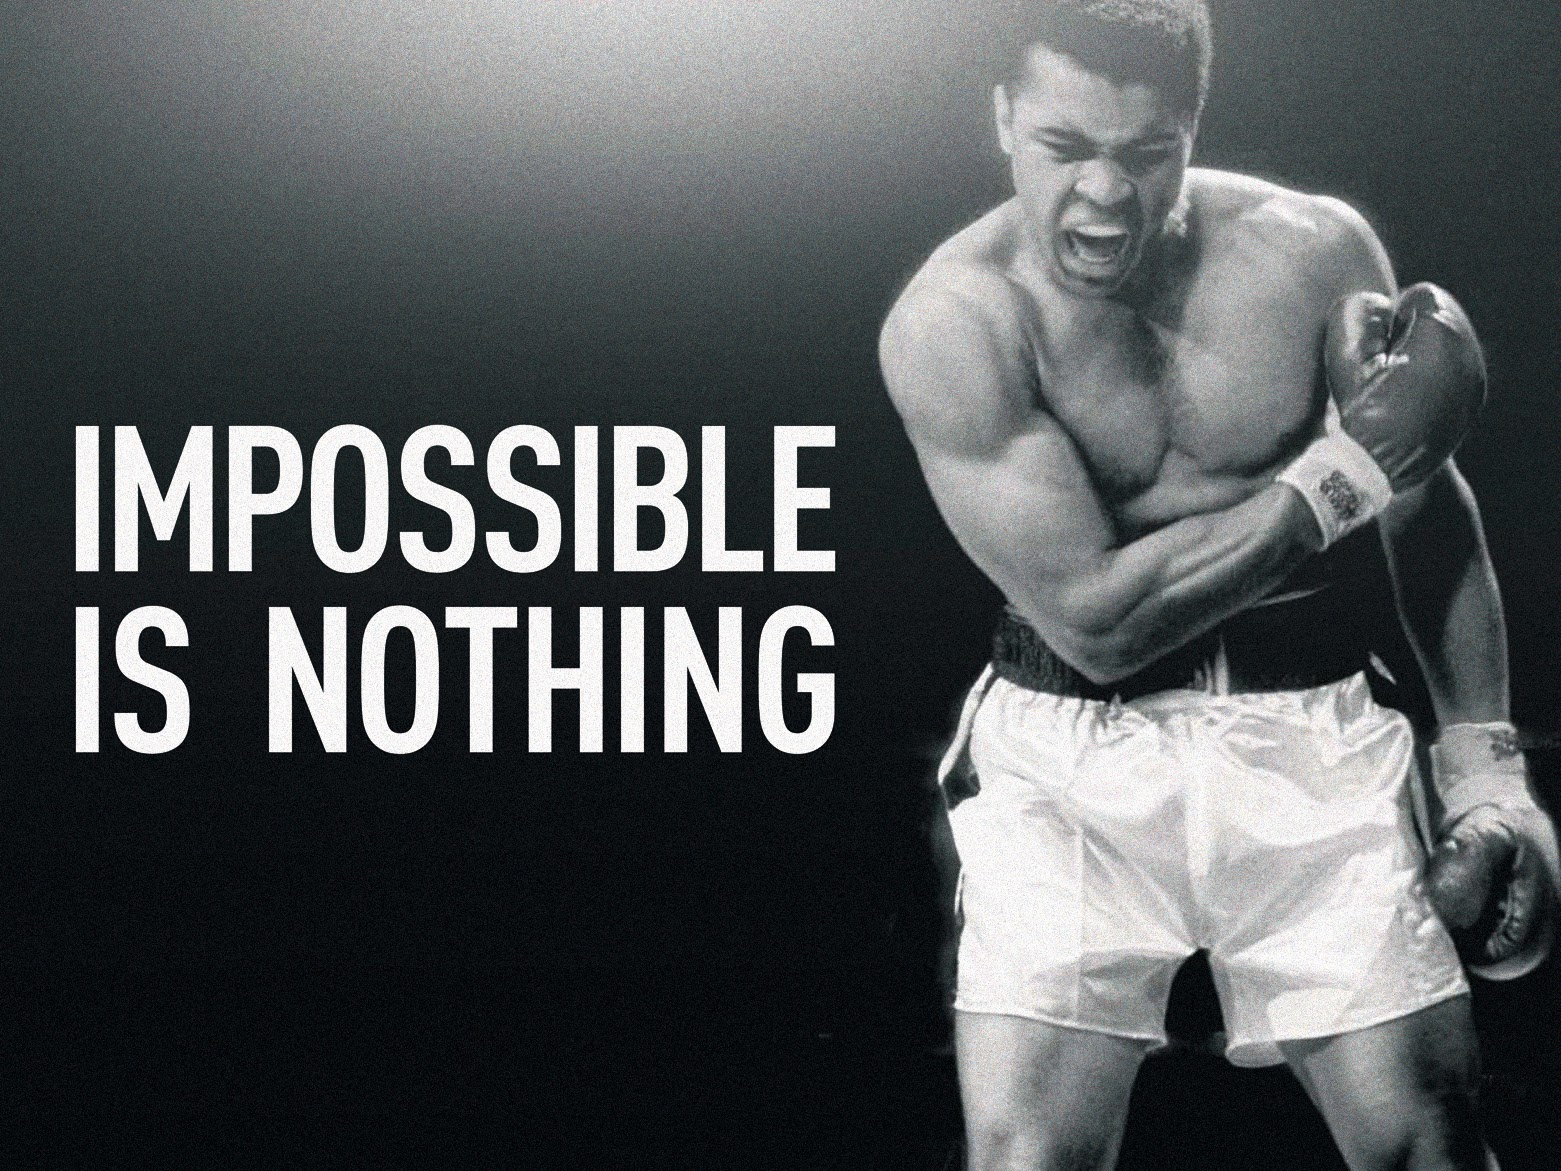 'Impossible is nothing' Adidas slogan inspired by Muhammad Ali's speech.